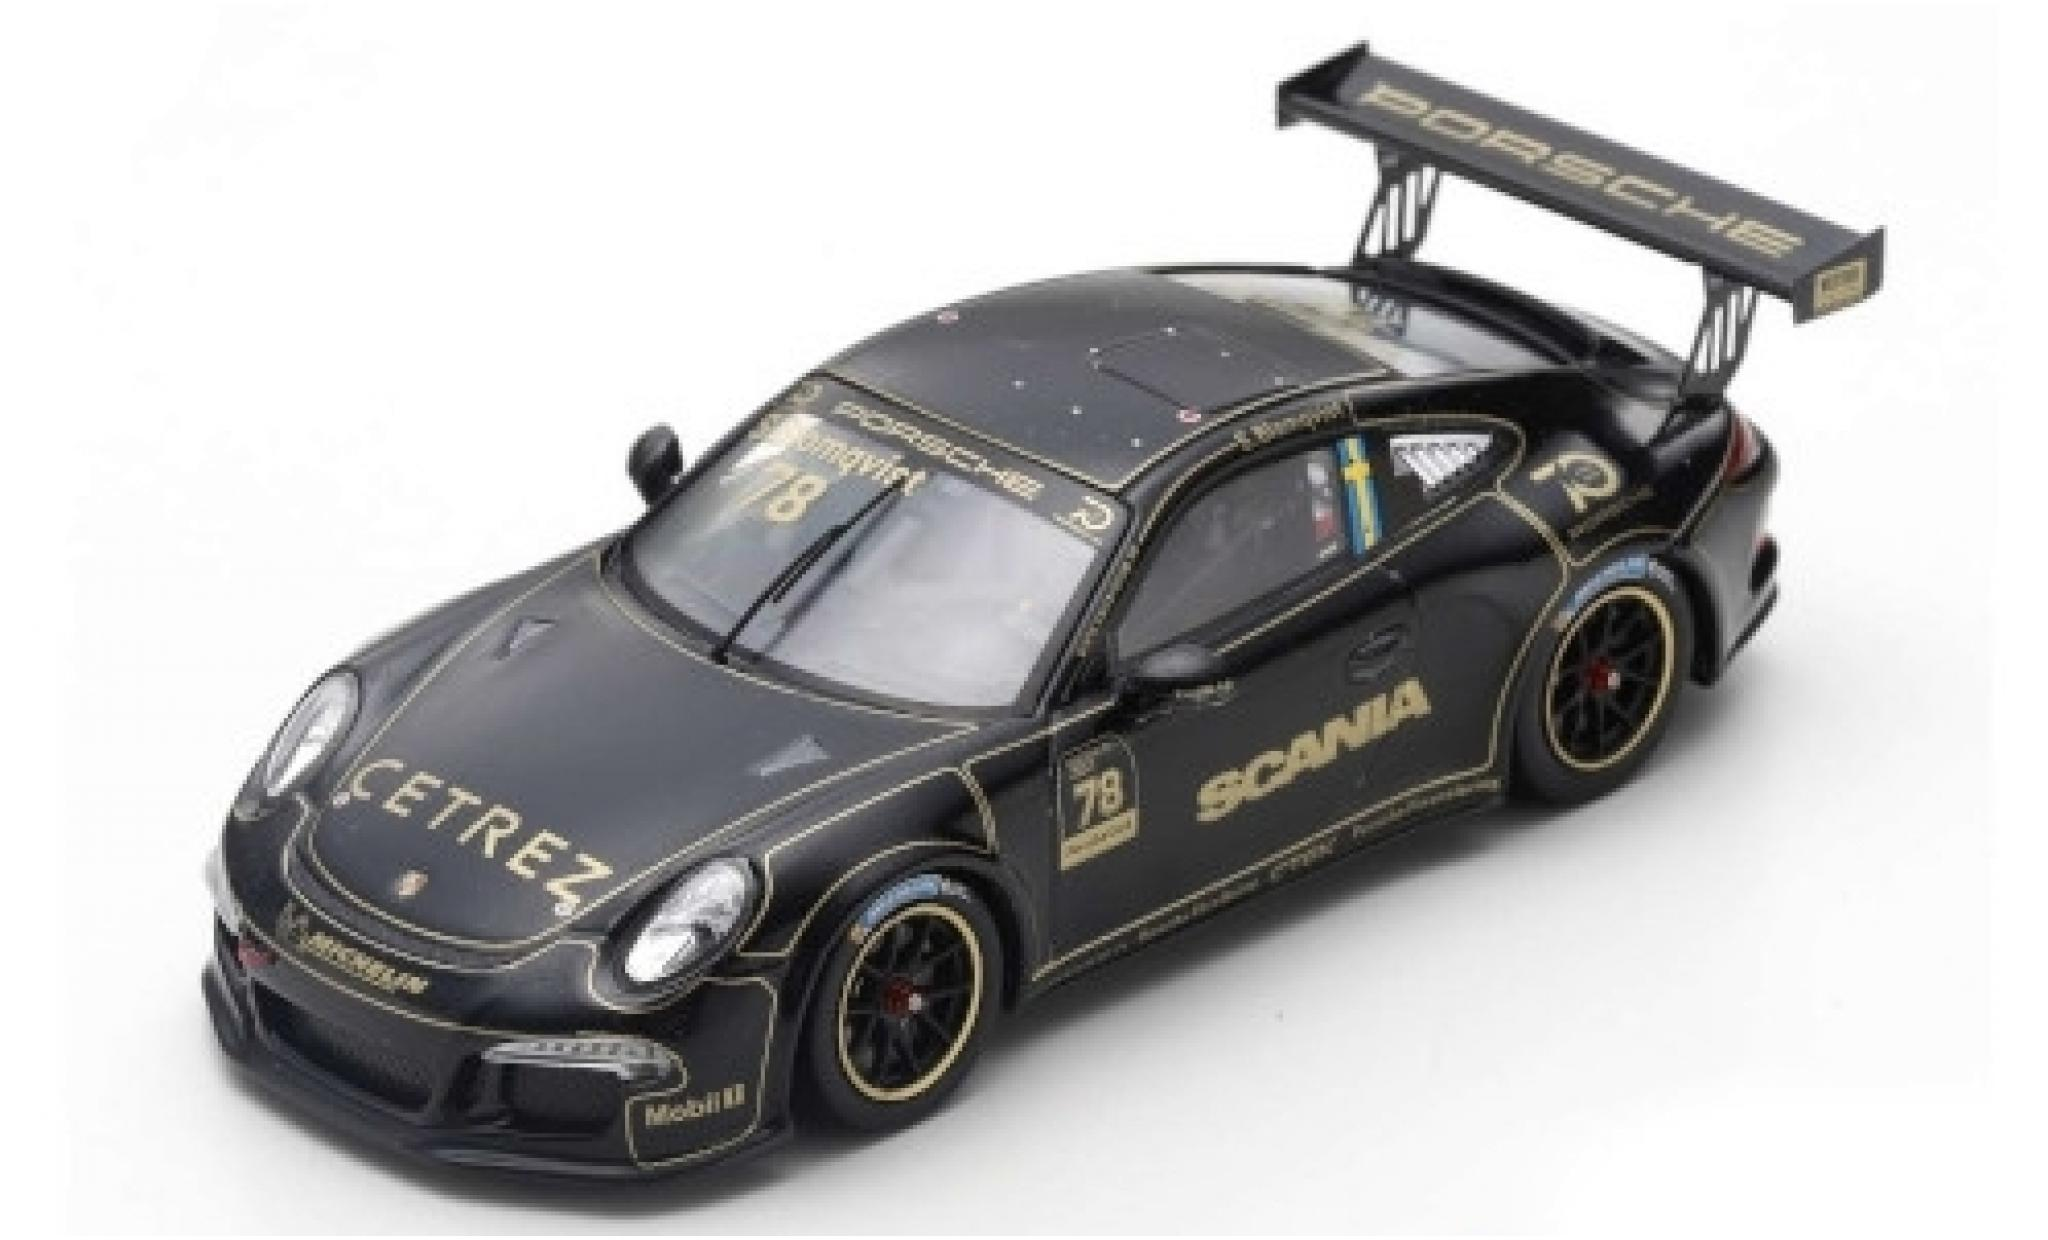 Porsche 991 GT3 Cup 1/43 Spark 911 ( II) No.78 Carrera Cup Scandinavia Anderstorp 2018 Tribute to Ronnie Peterson S.Blomqvist